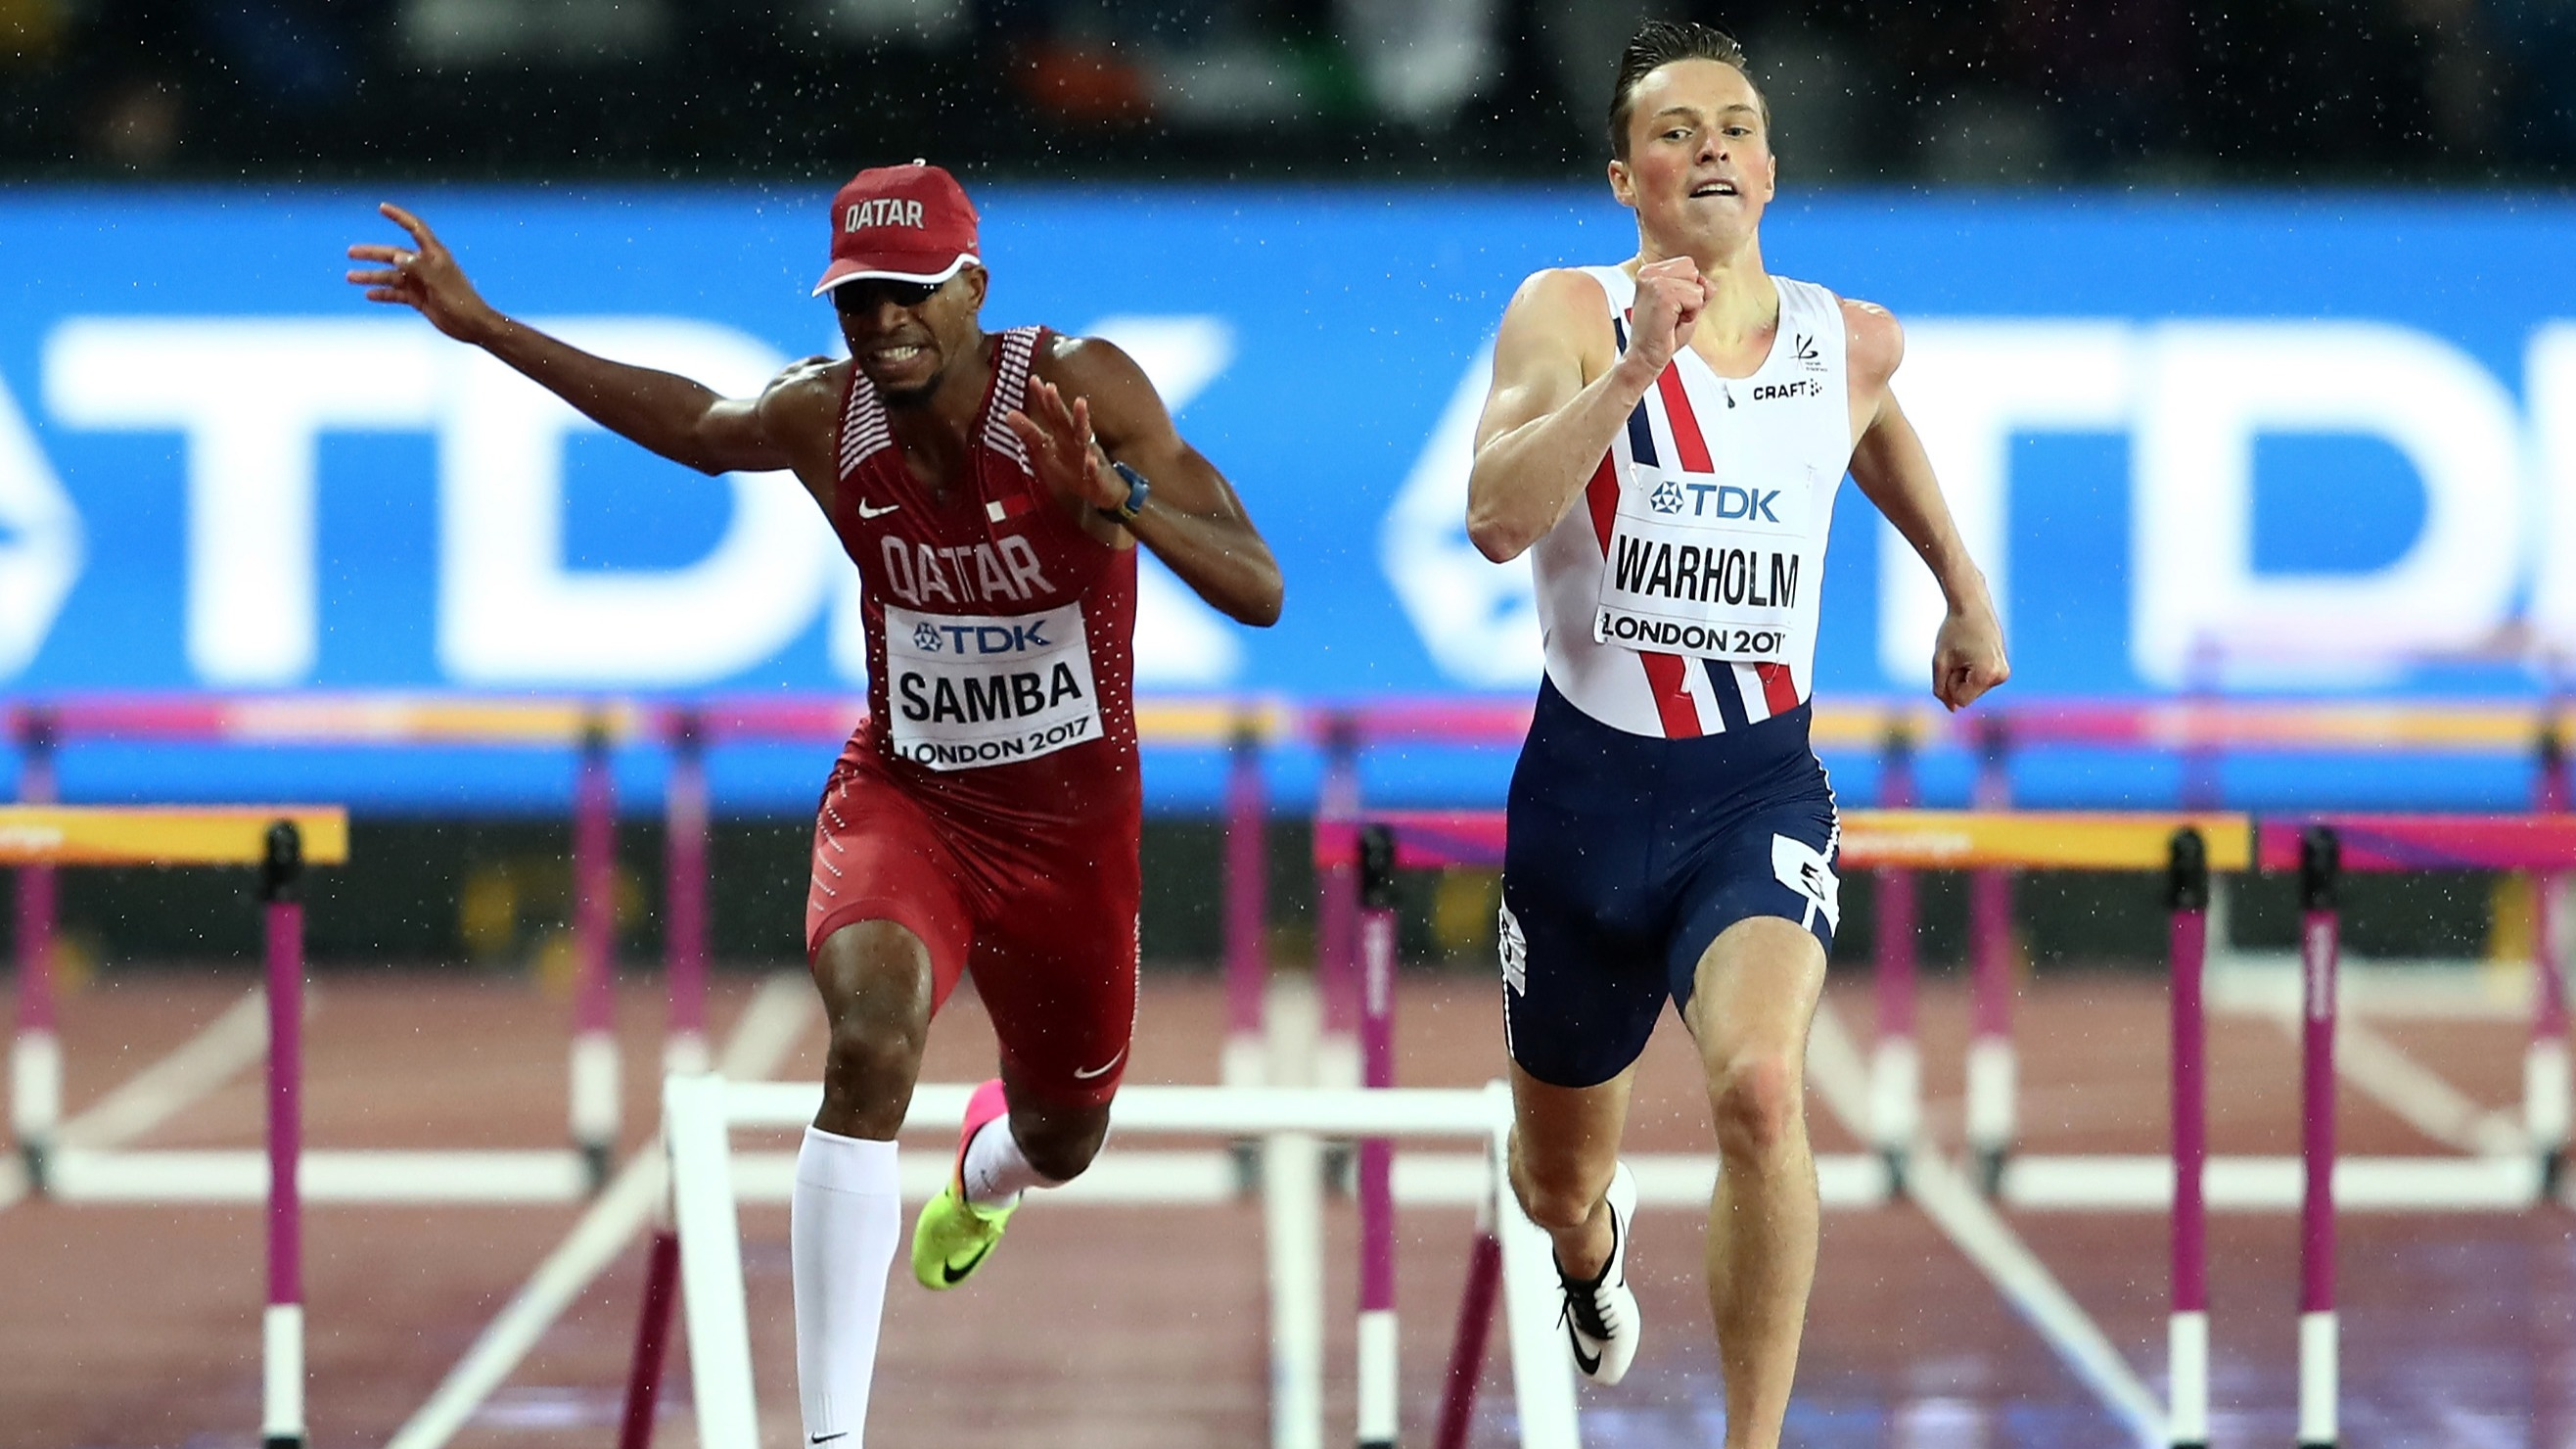 Karsten Warholm Upsets Olympic Champion Kerron Clement In 400m Hurdles | FloTrack